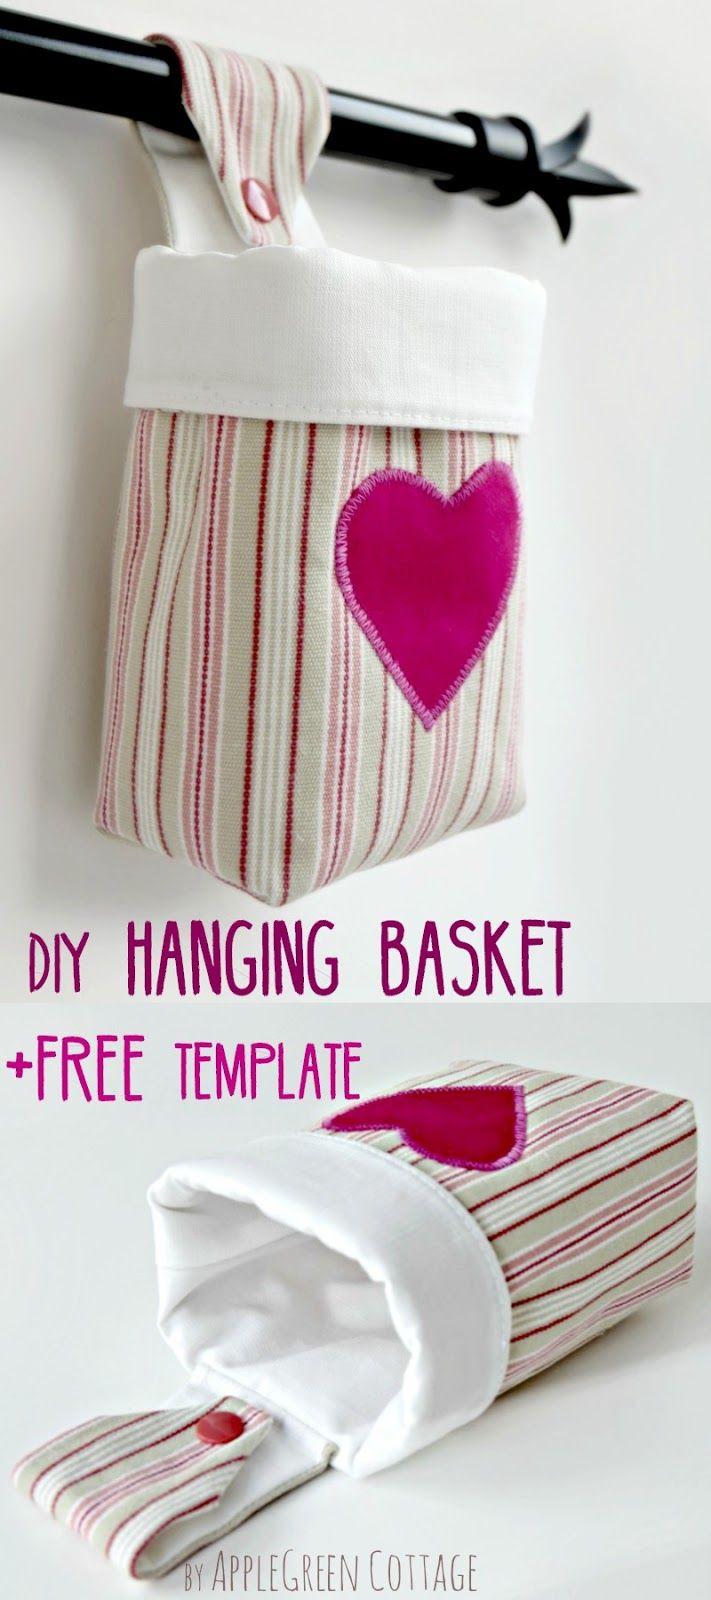 How to make a fabric hanging basket and a free sewing pattern- a fun beginner sewing project.